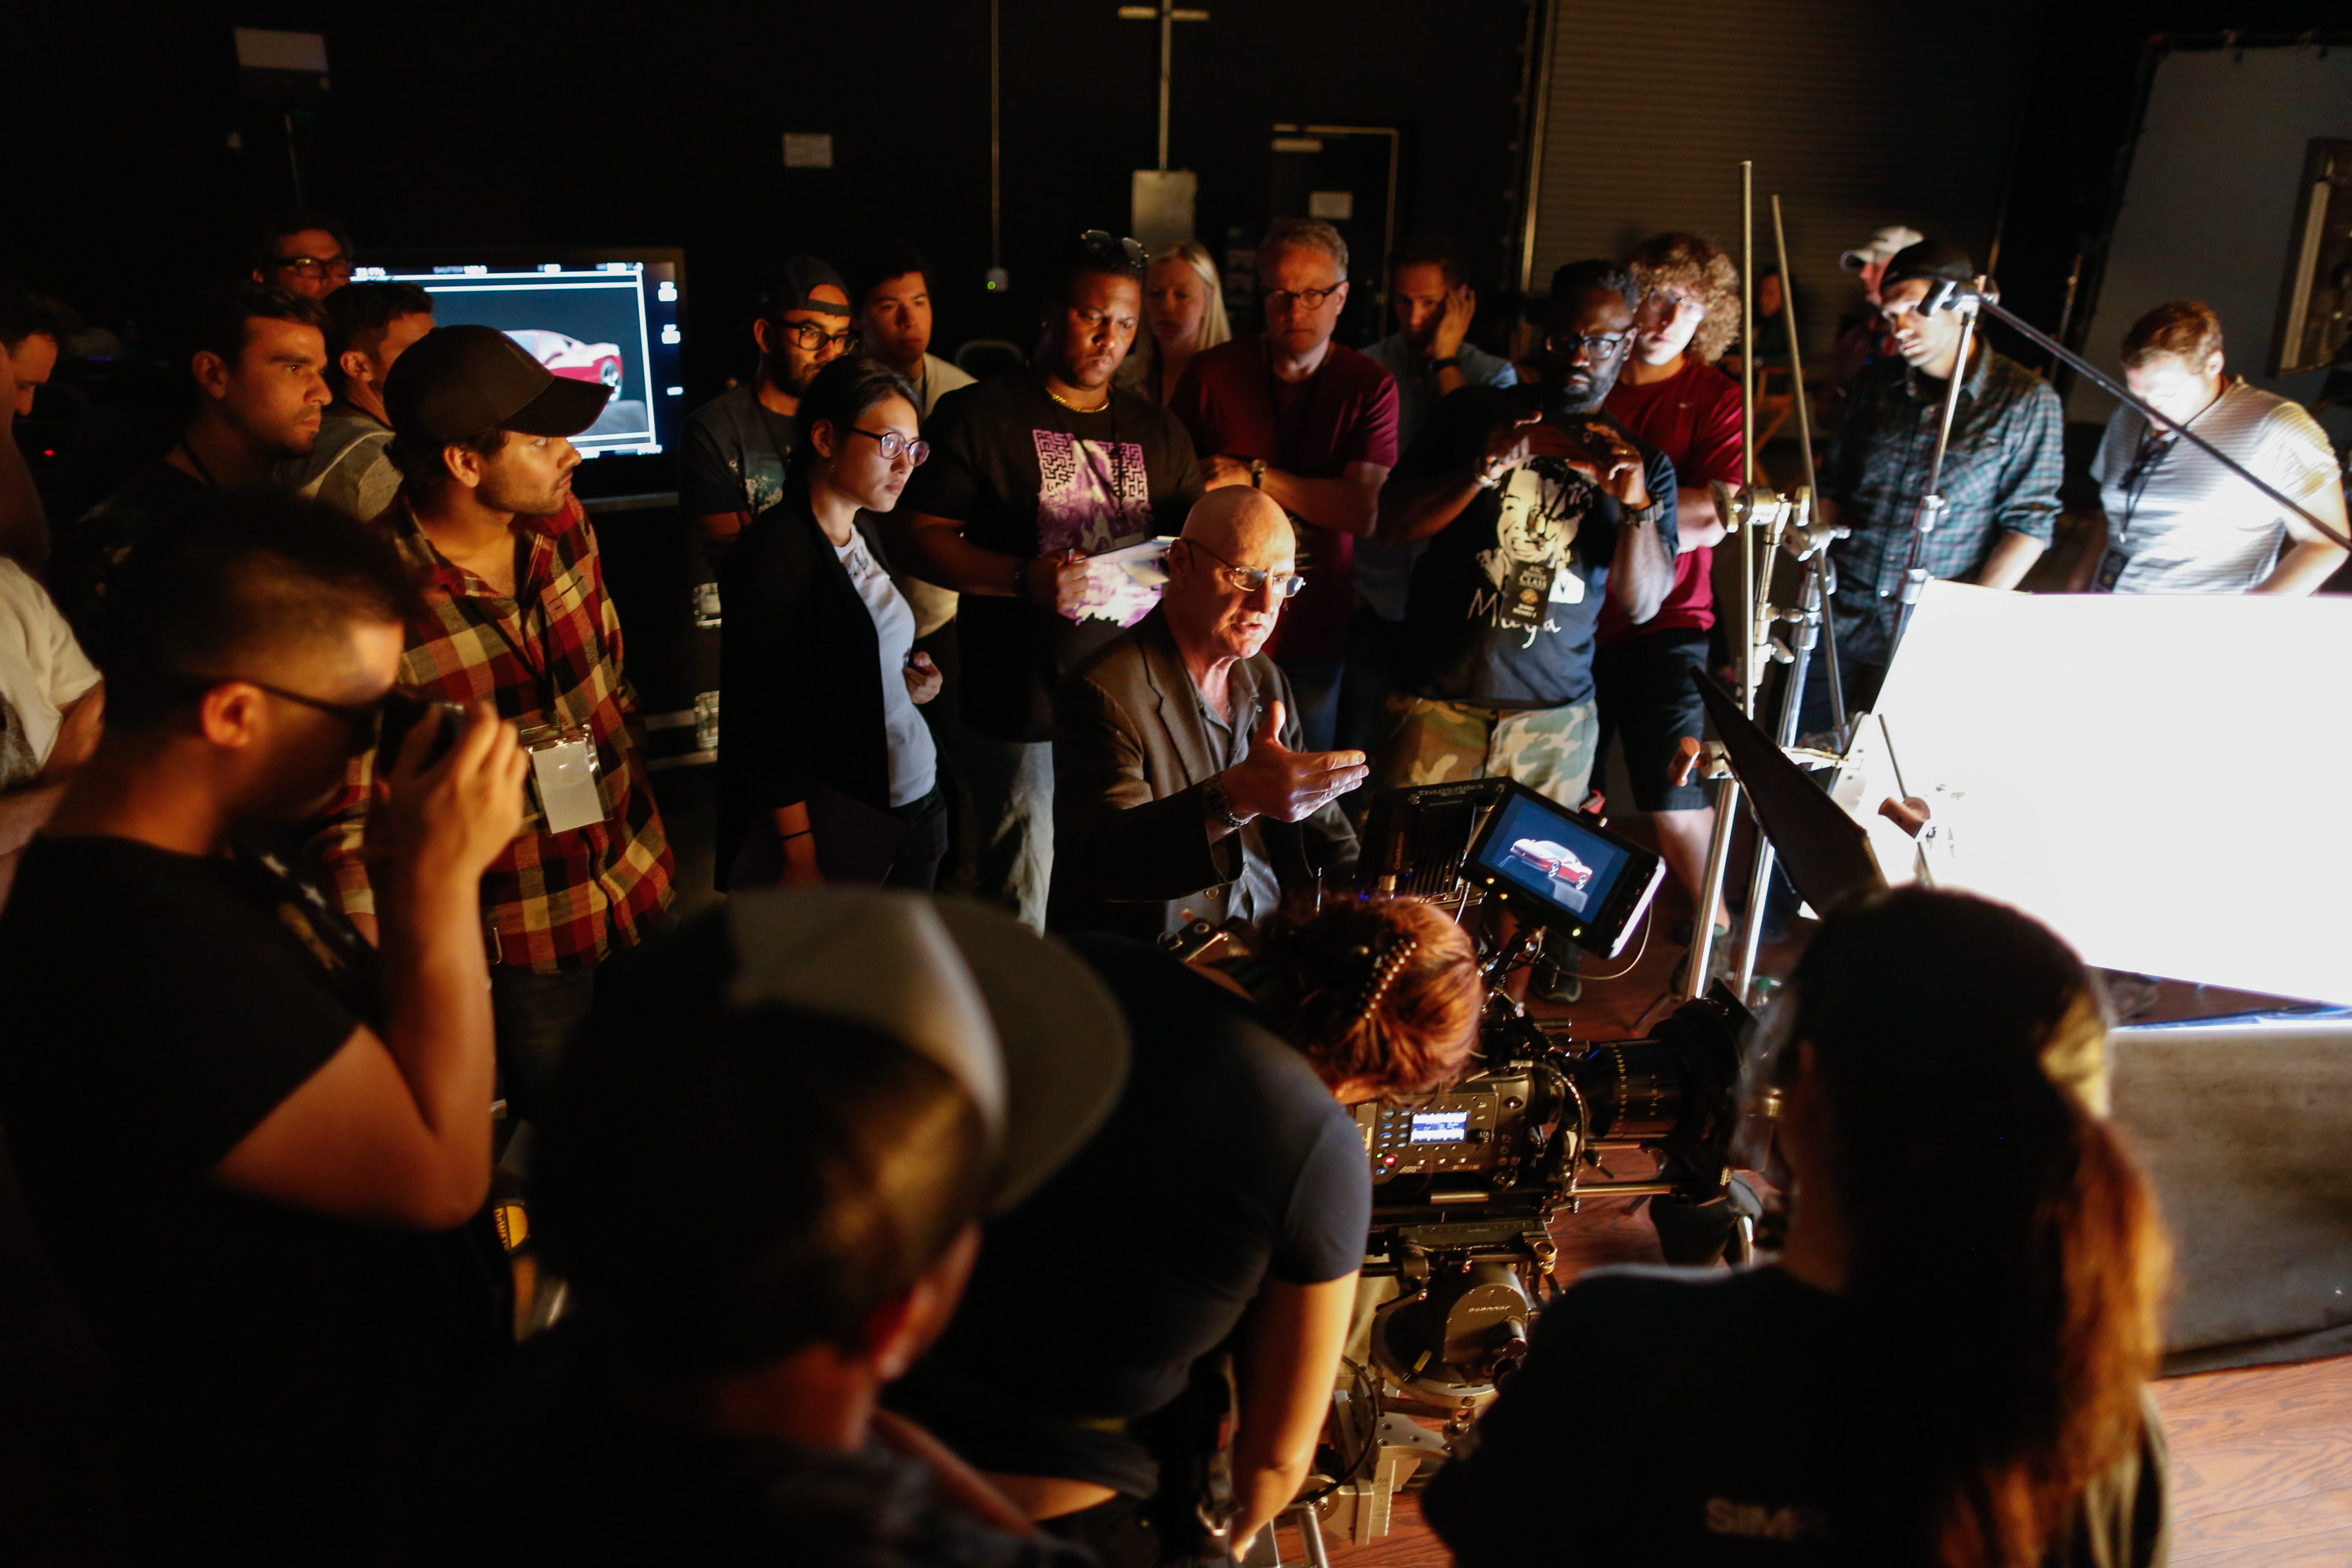 Bill Bennett, ASC lectures on the set of commercial photography.